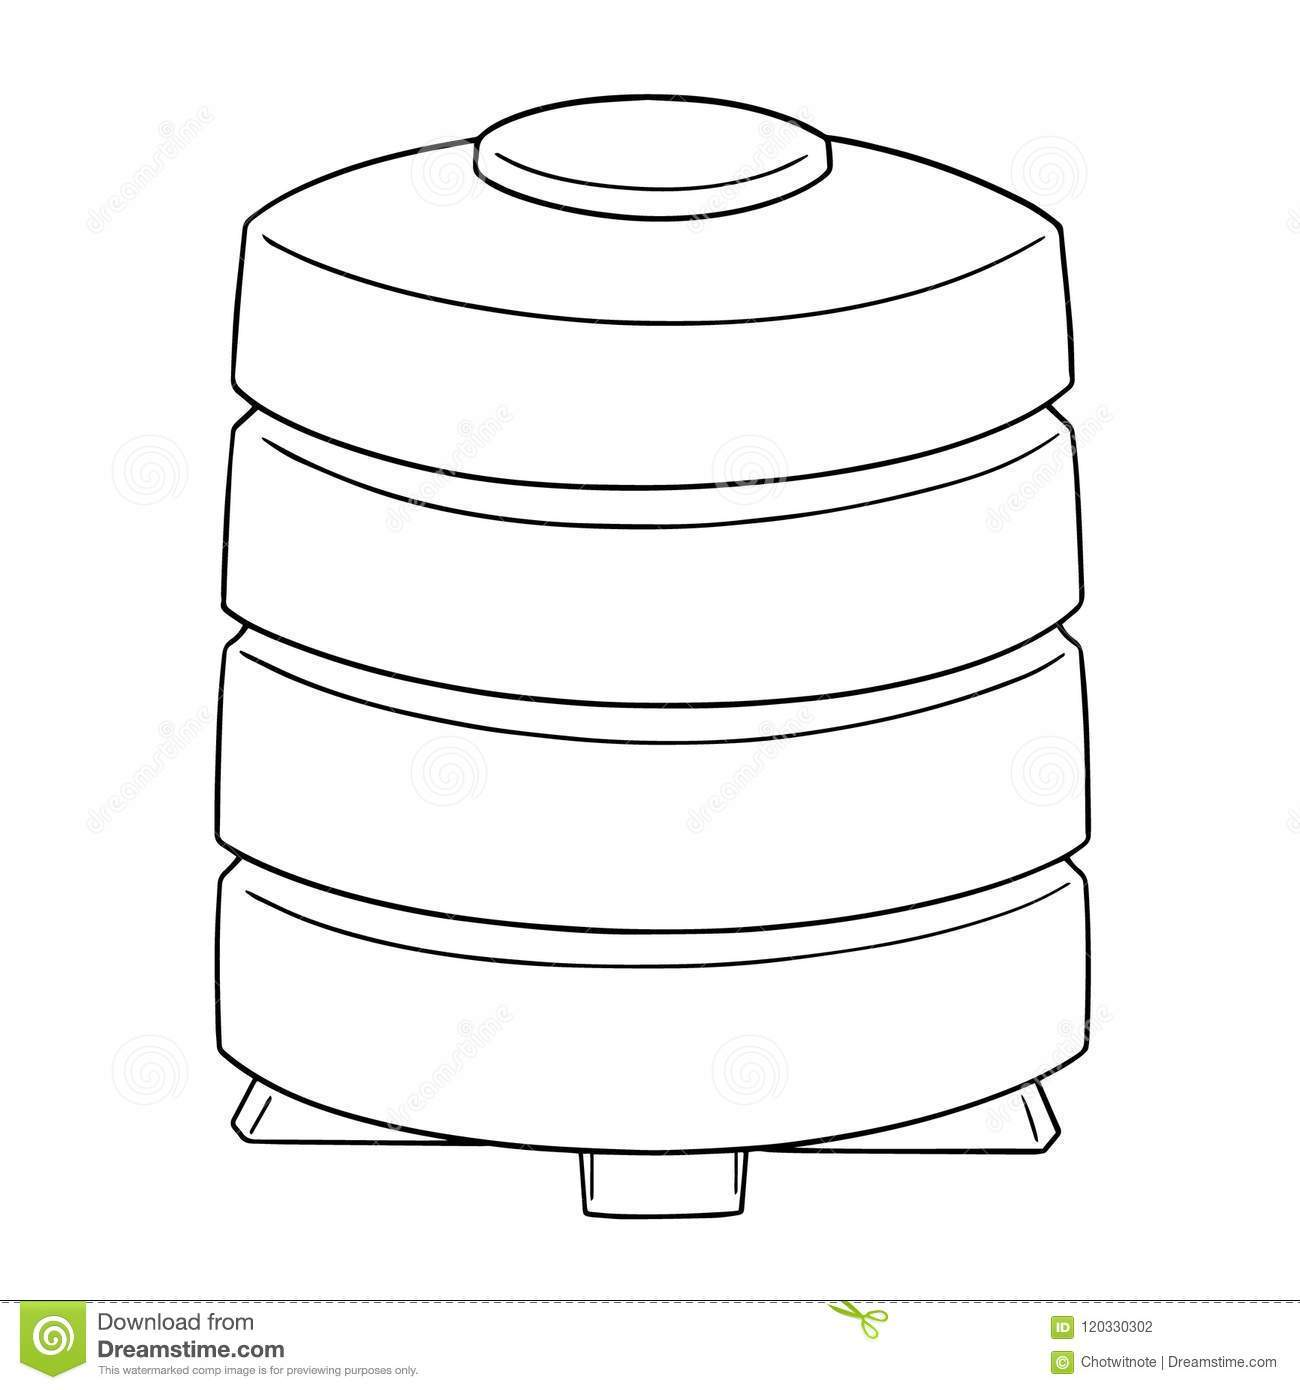 Water tank clipart images png download Water tank clipart black and white 3 » Clipart Portal png download